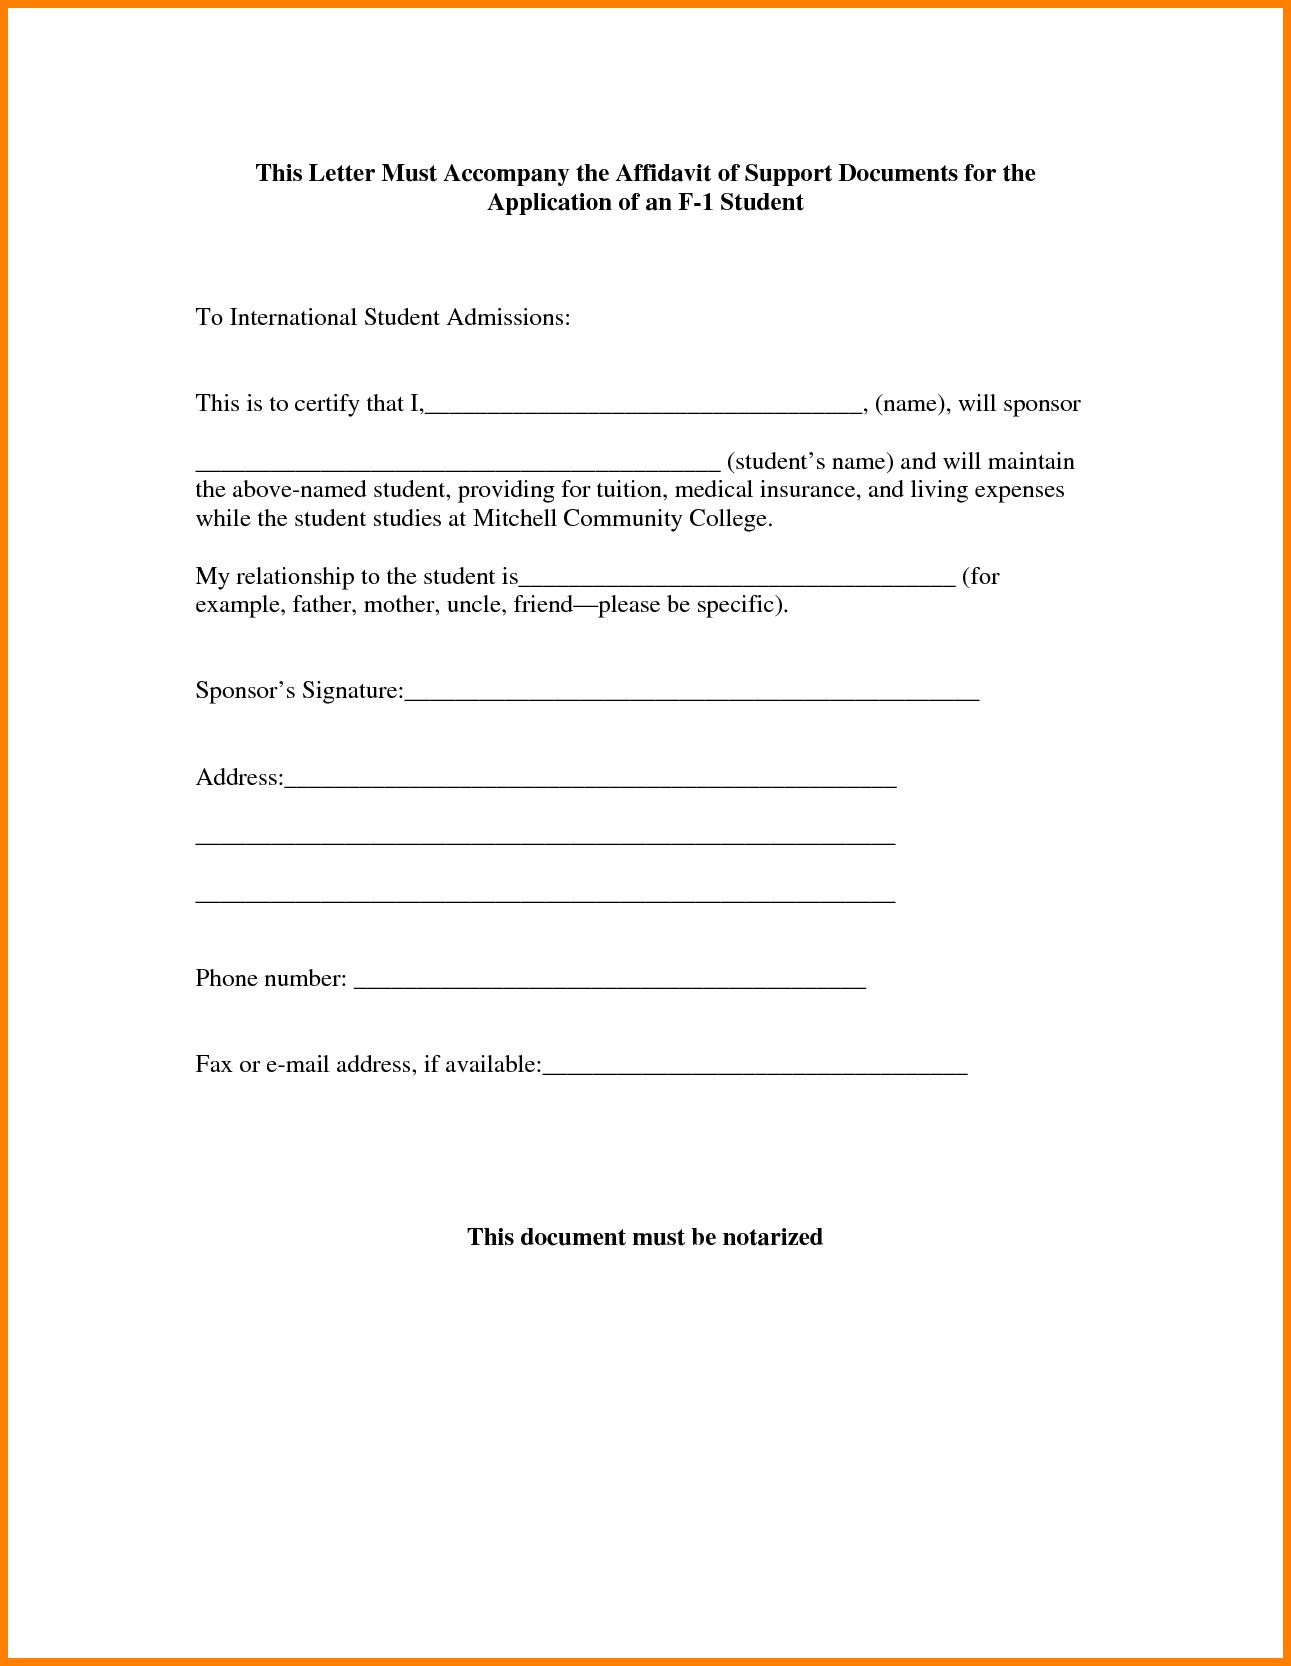 Spousal Support Letter Template - Sample Certificate Authority Copy Child Support Letters Sample